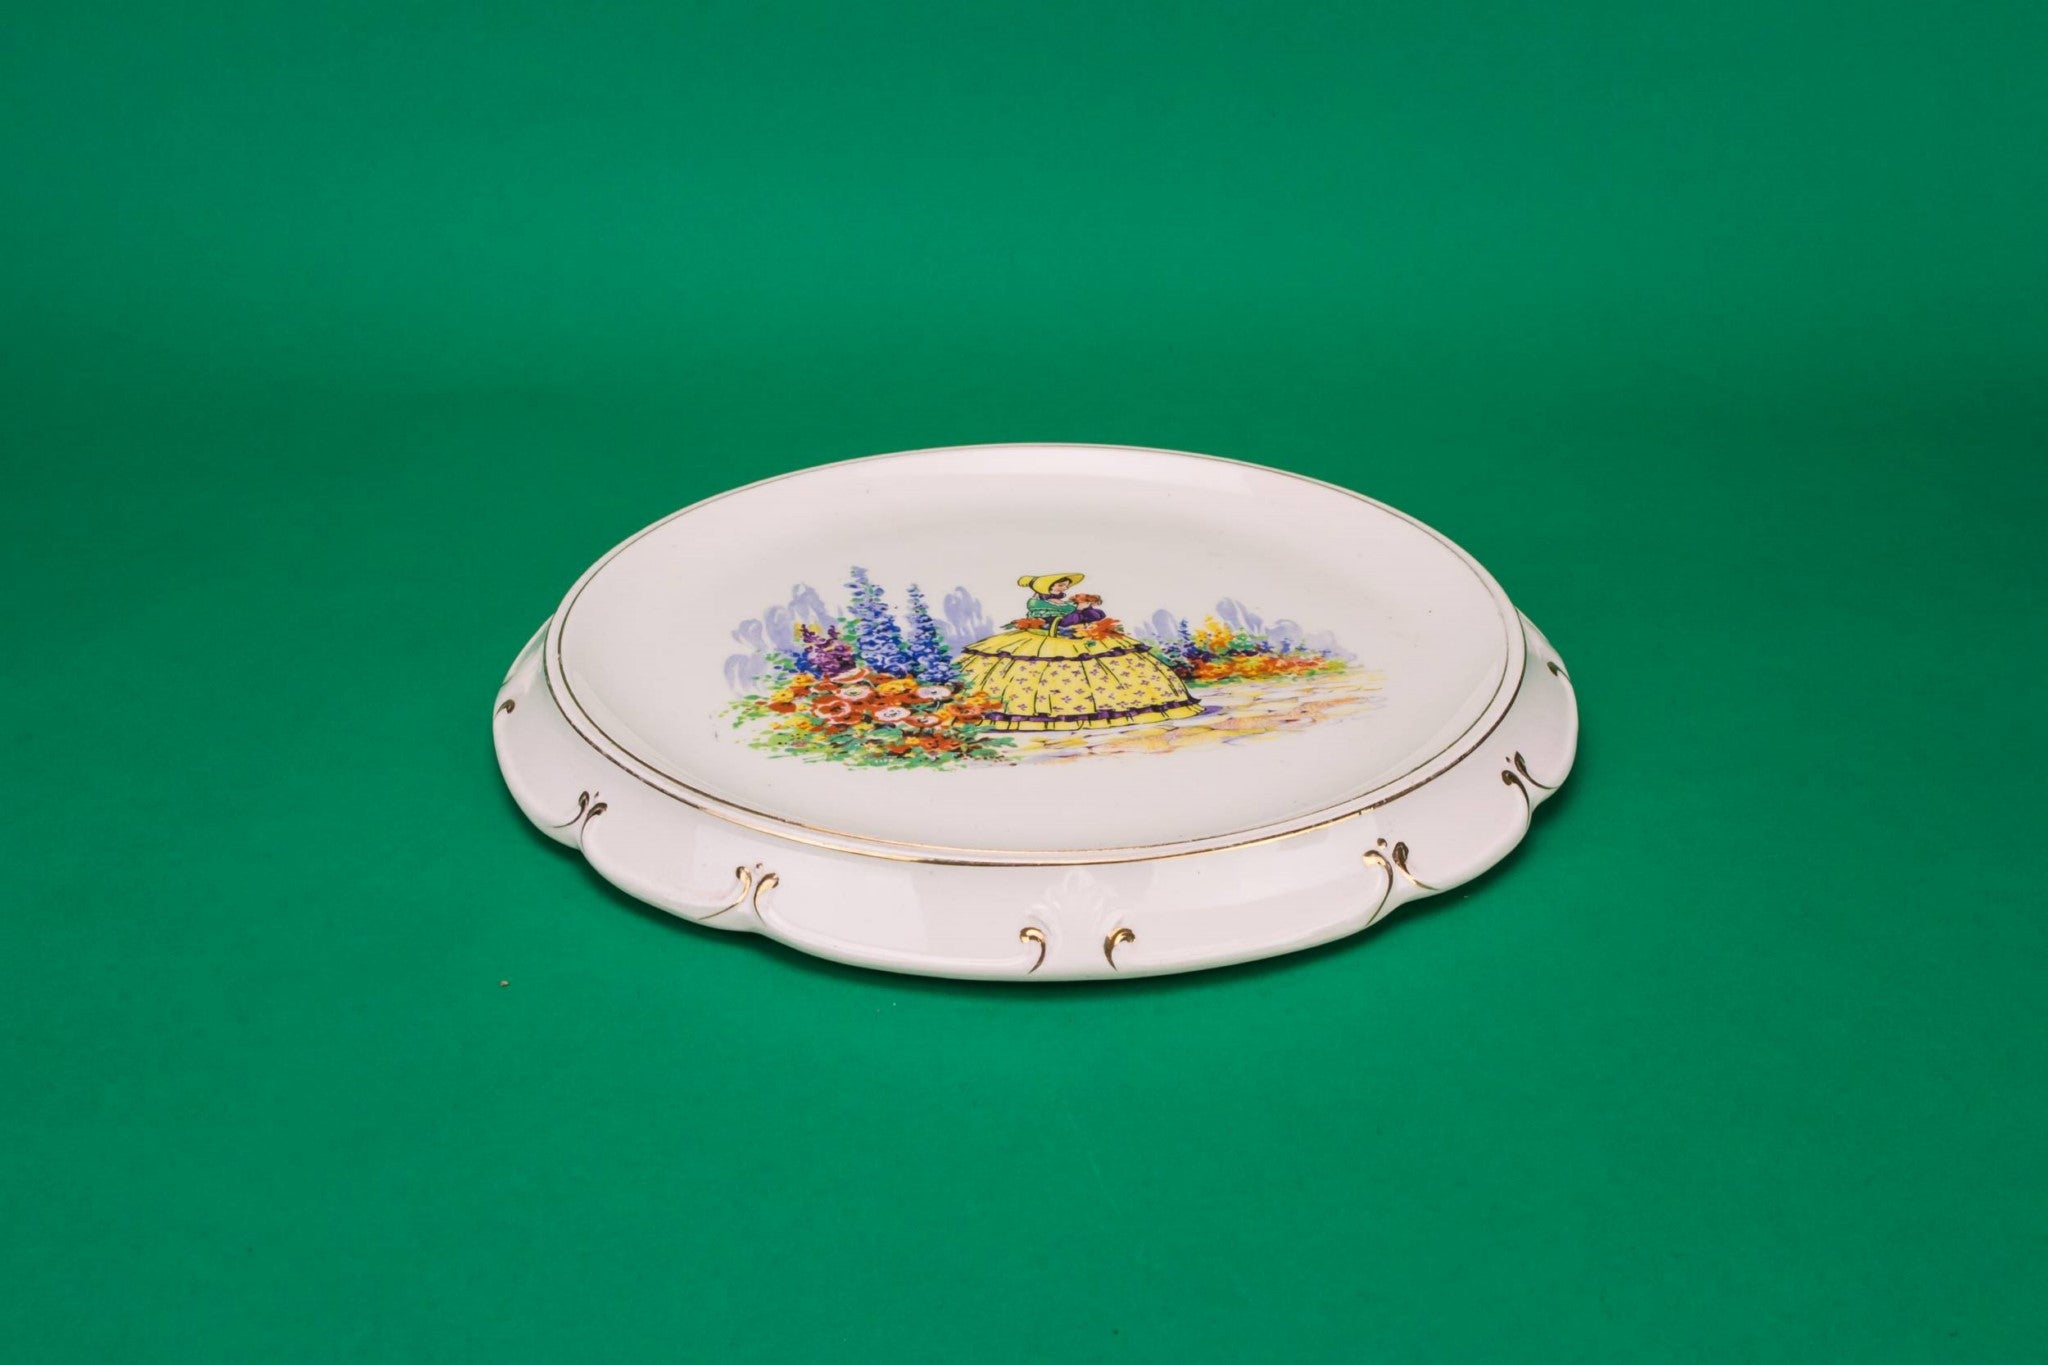 Art Deco serving platter